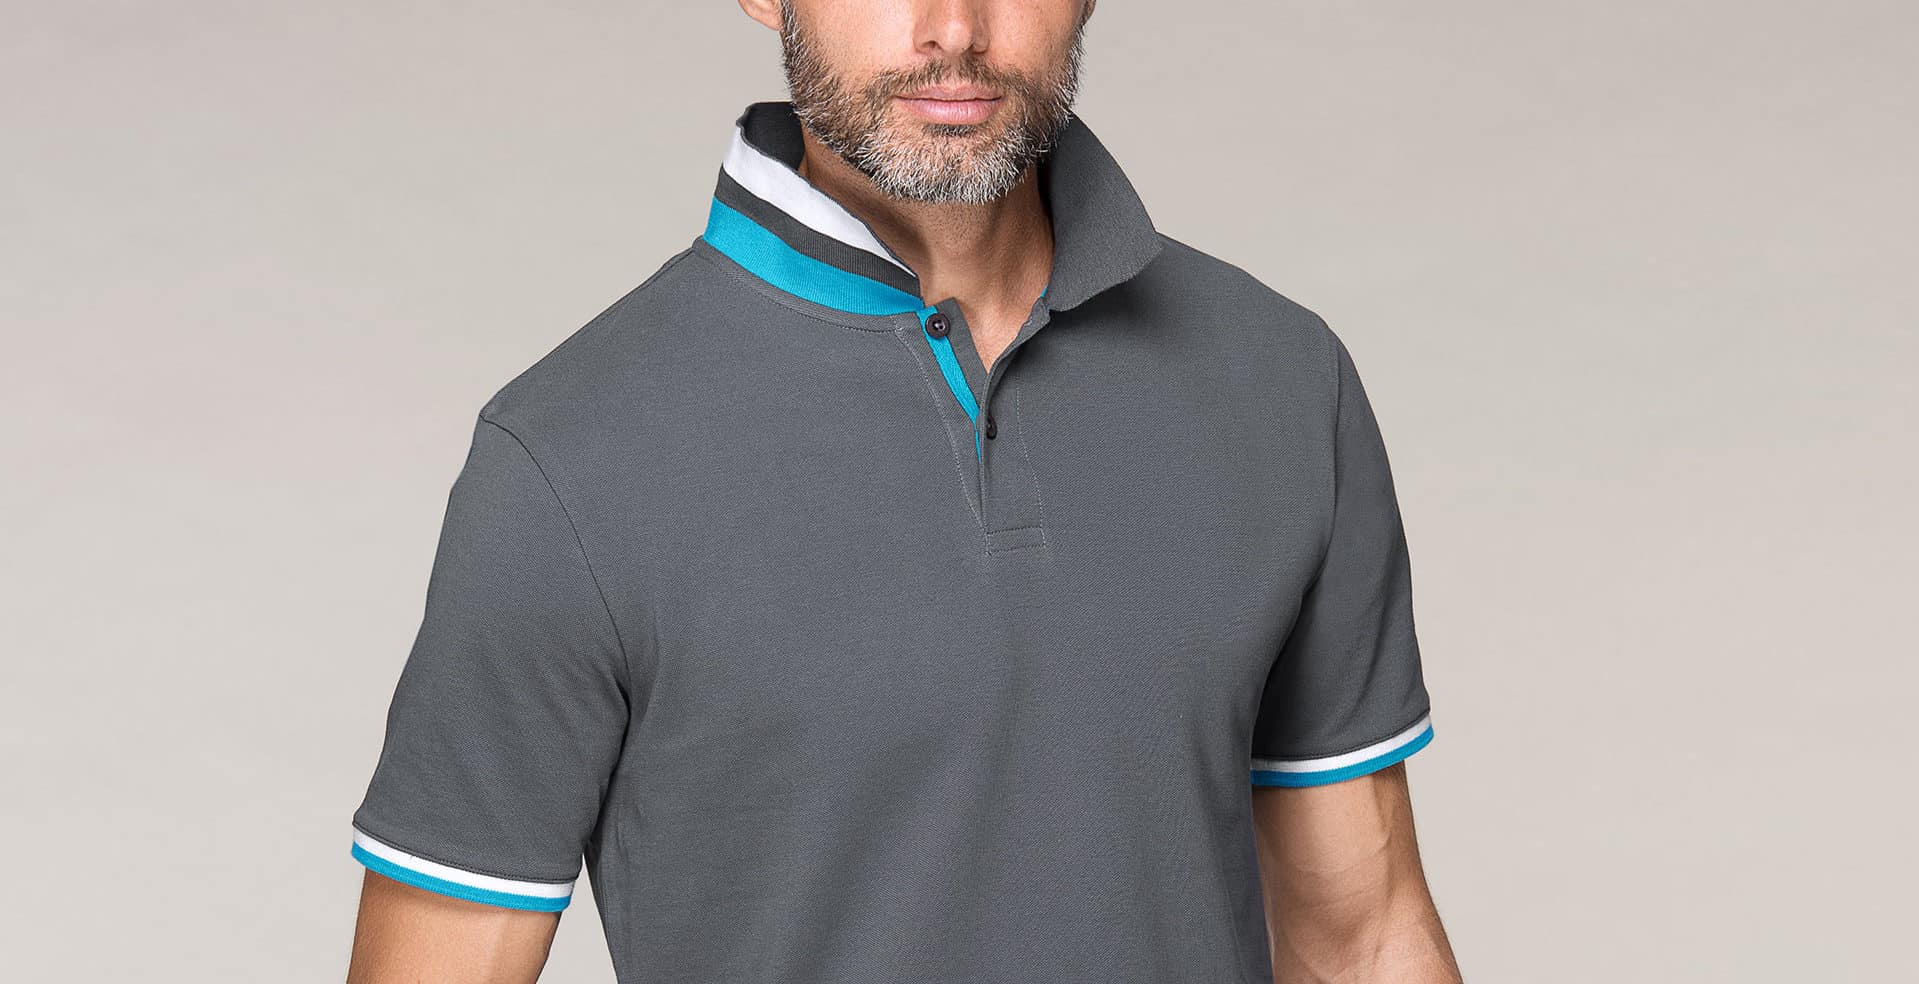 how to wear a polo shirt fashionably